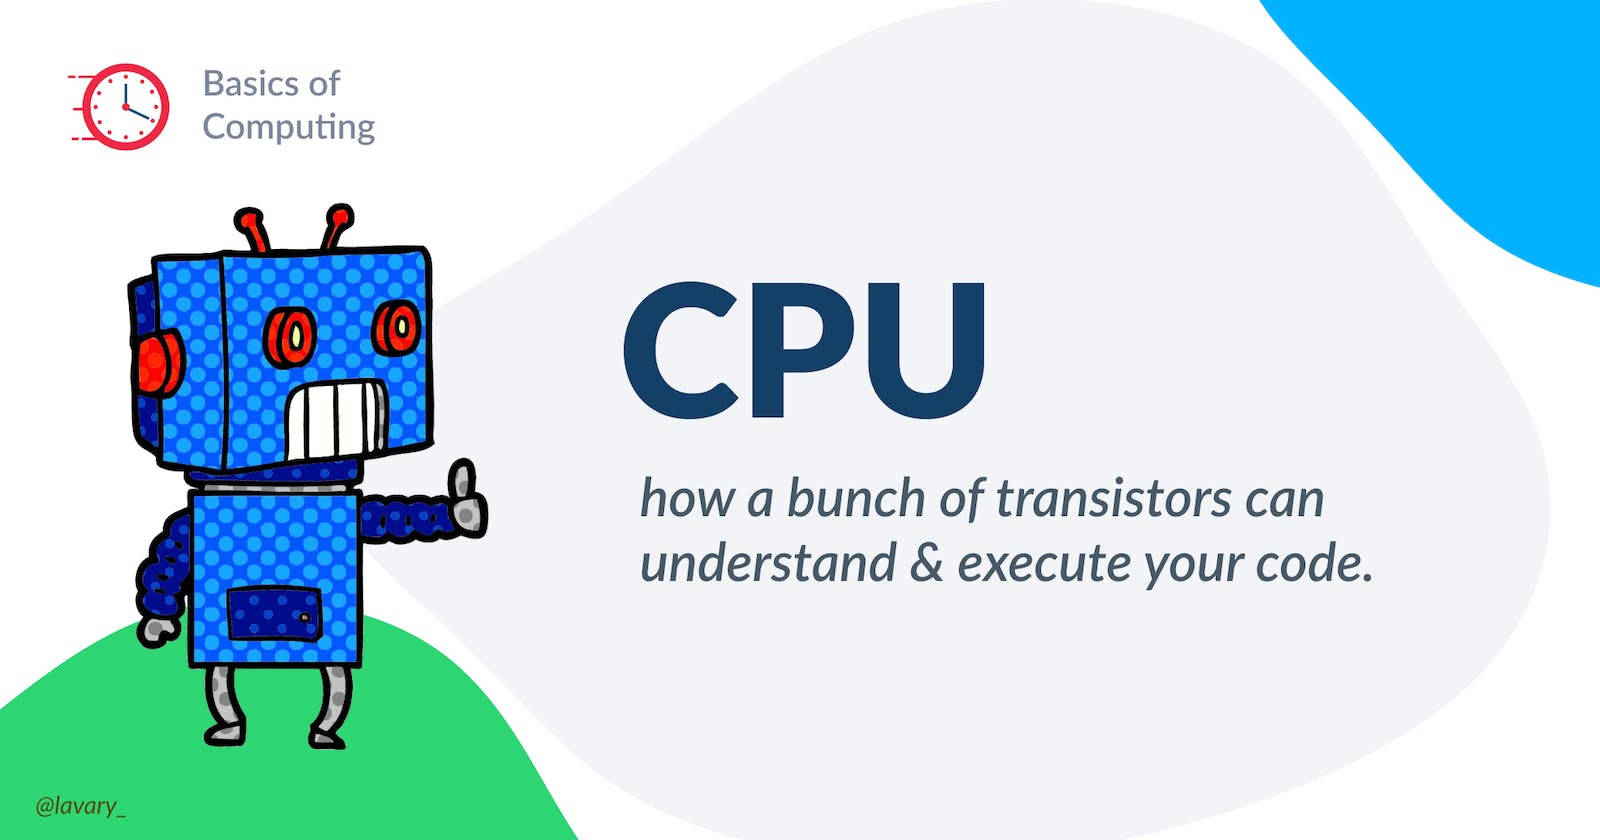 CPU, how a bunch of transistors can understand and execute your code